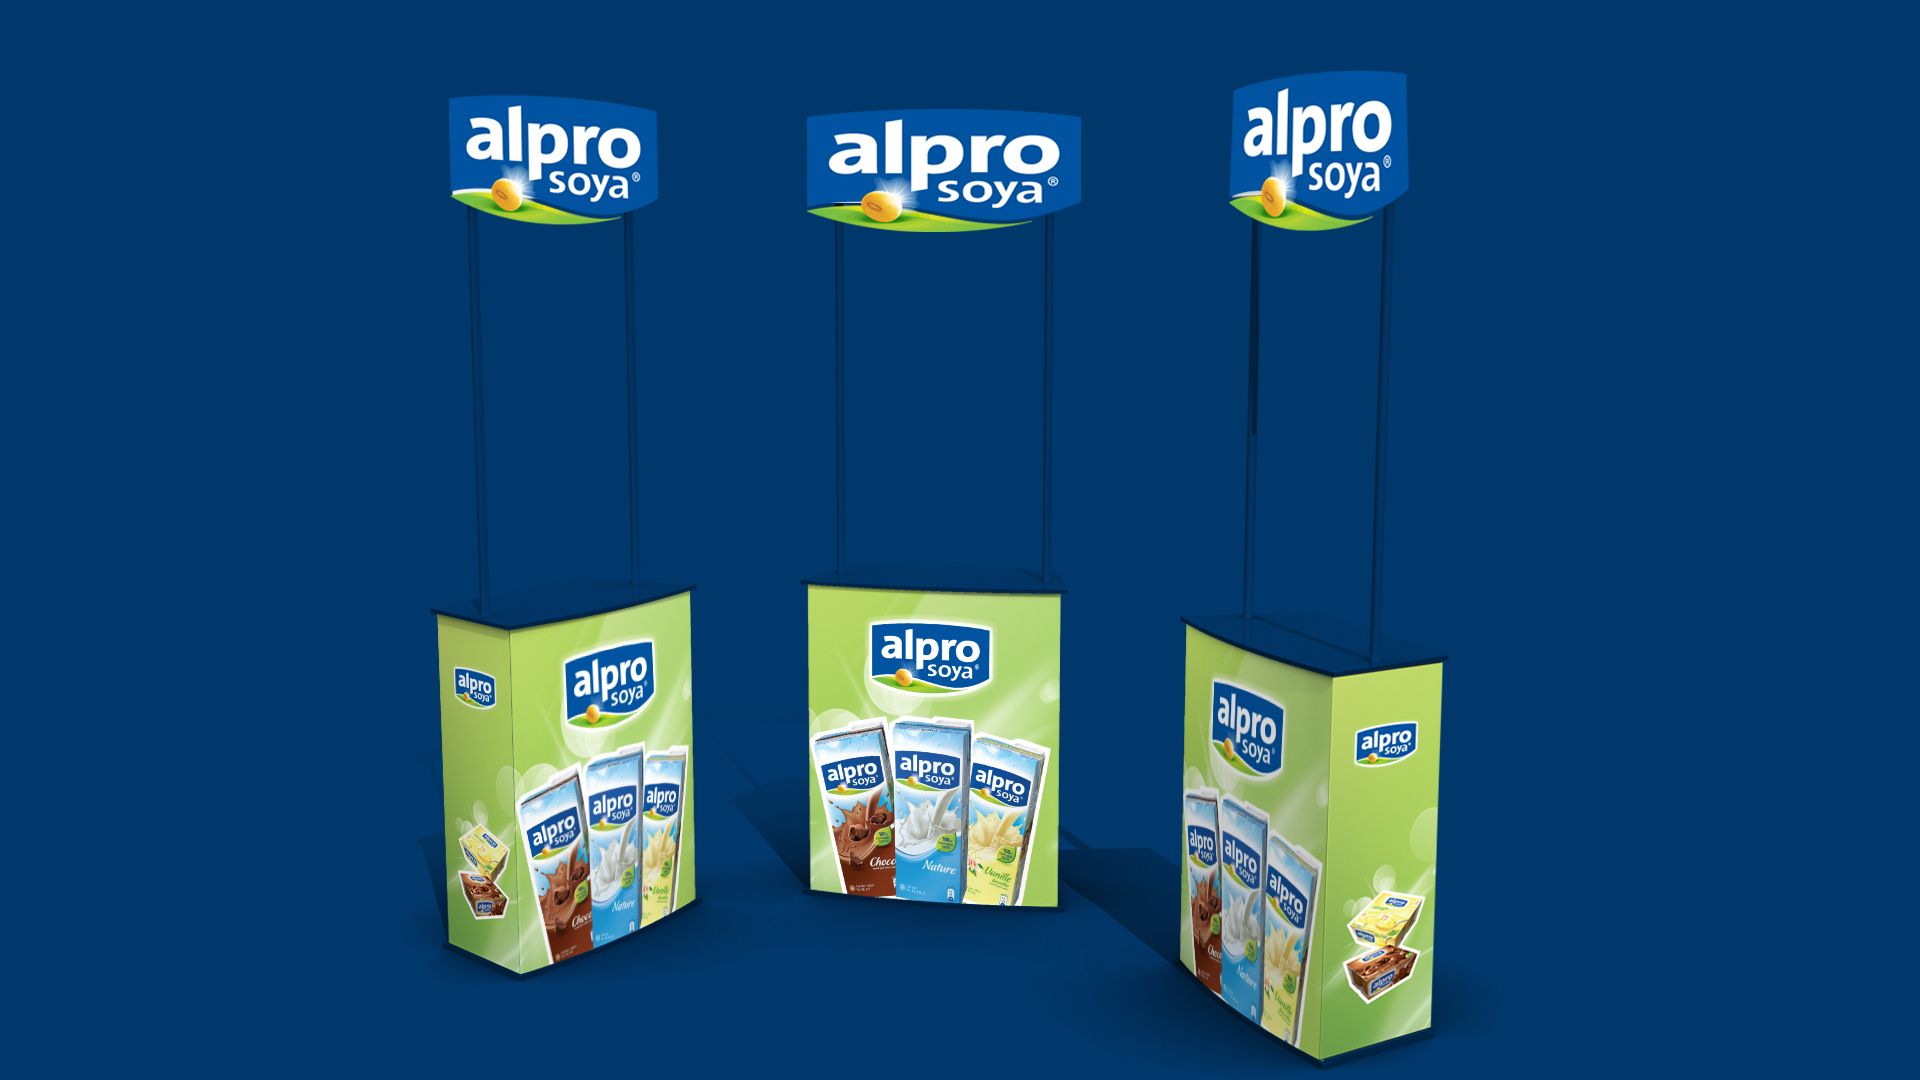 Alpro Soya Tasting Stand Big Idea Branding Amp Advertising